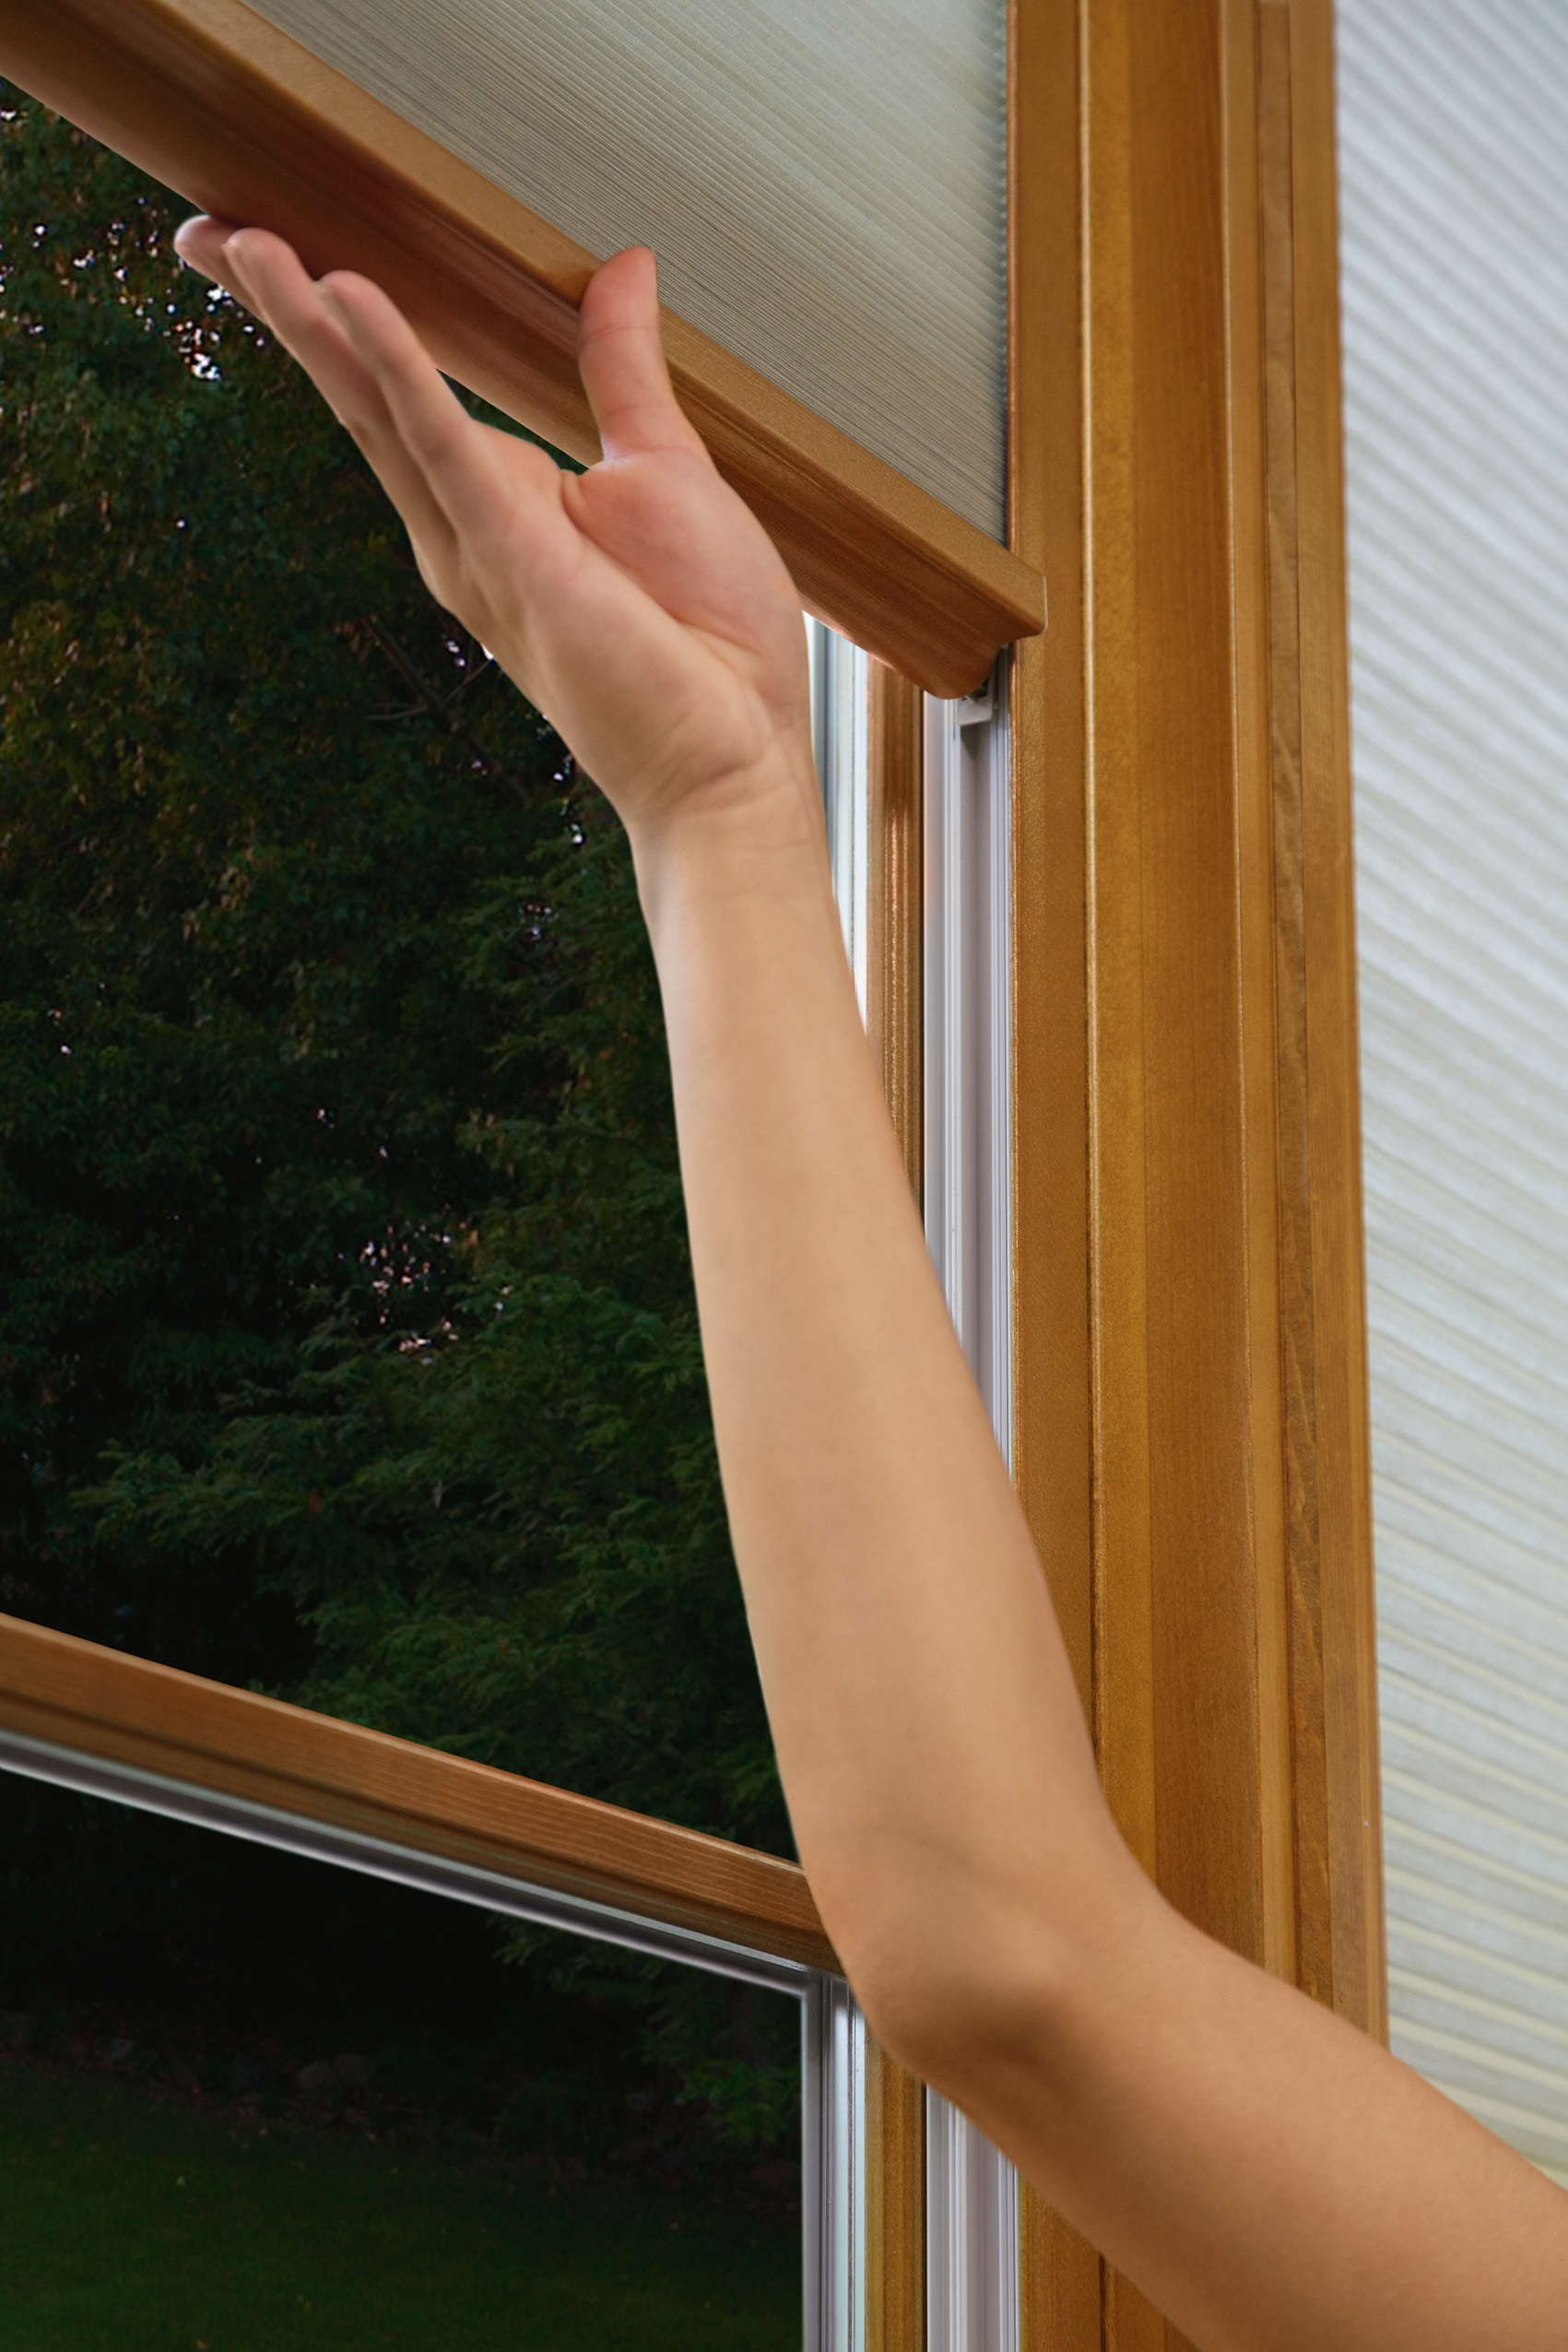 Marvin 39 s interior shade system has it made remodeling for Marvin window shades cost